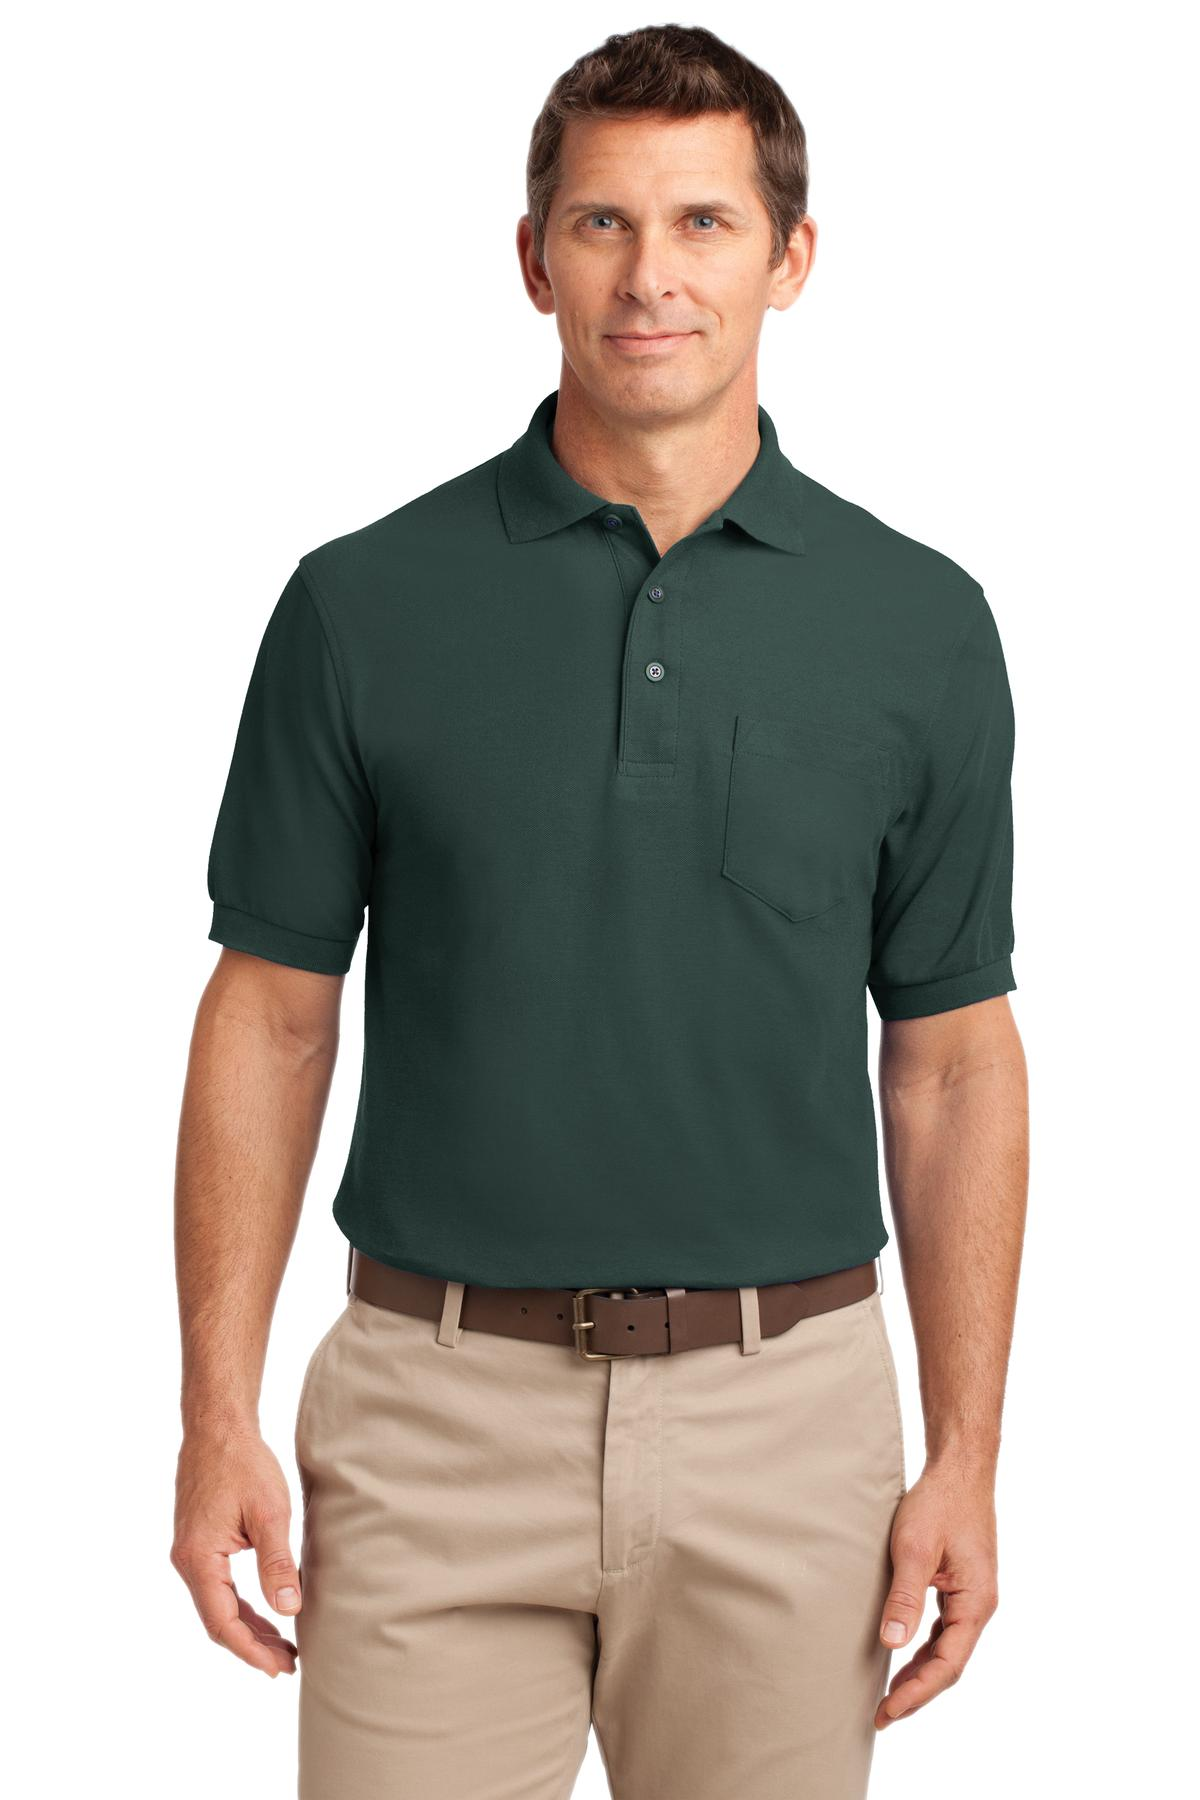 Vine Green Port Authority Stain-Release Polo.